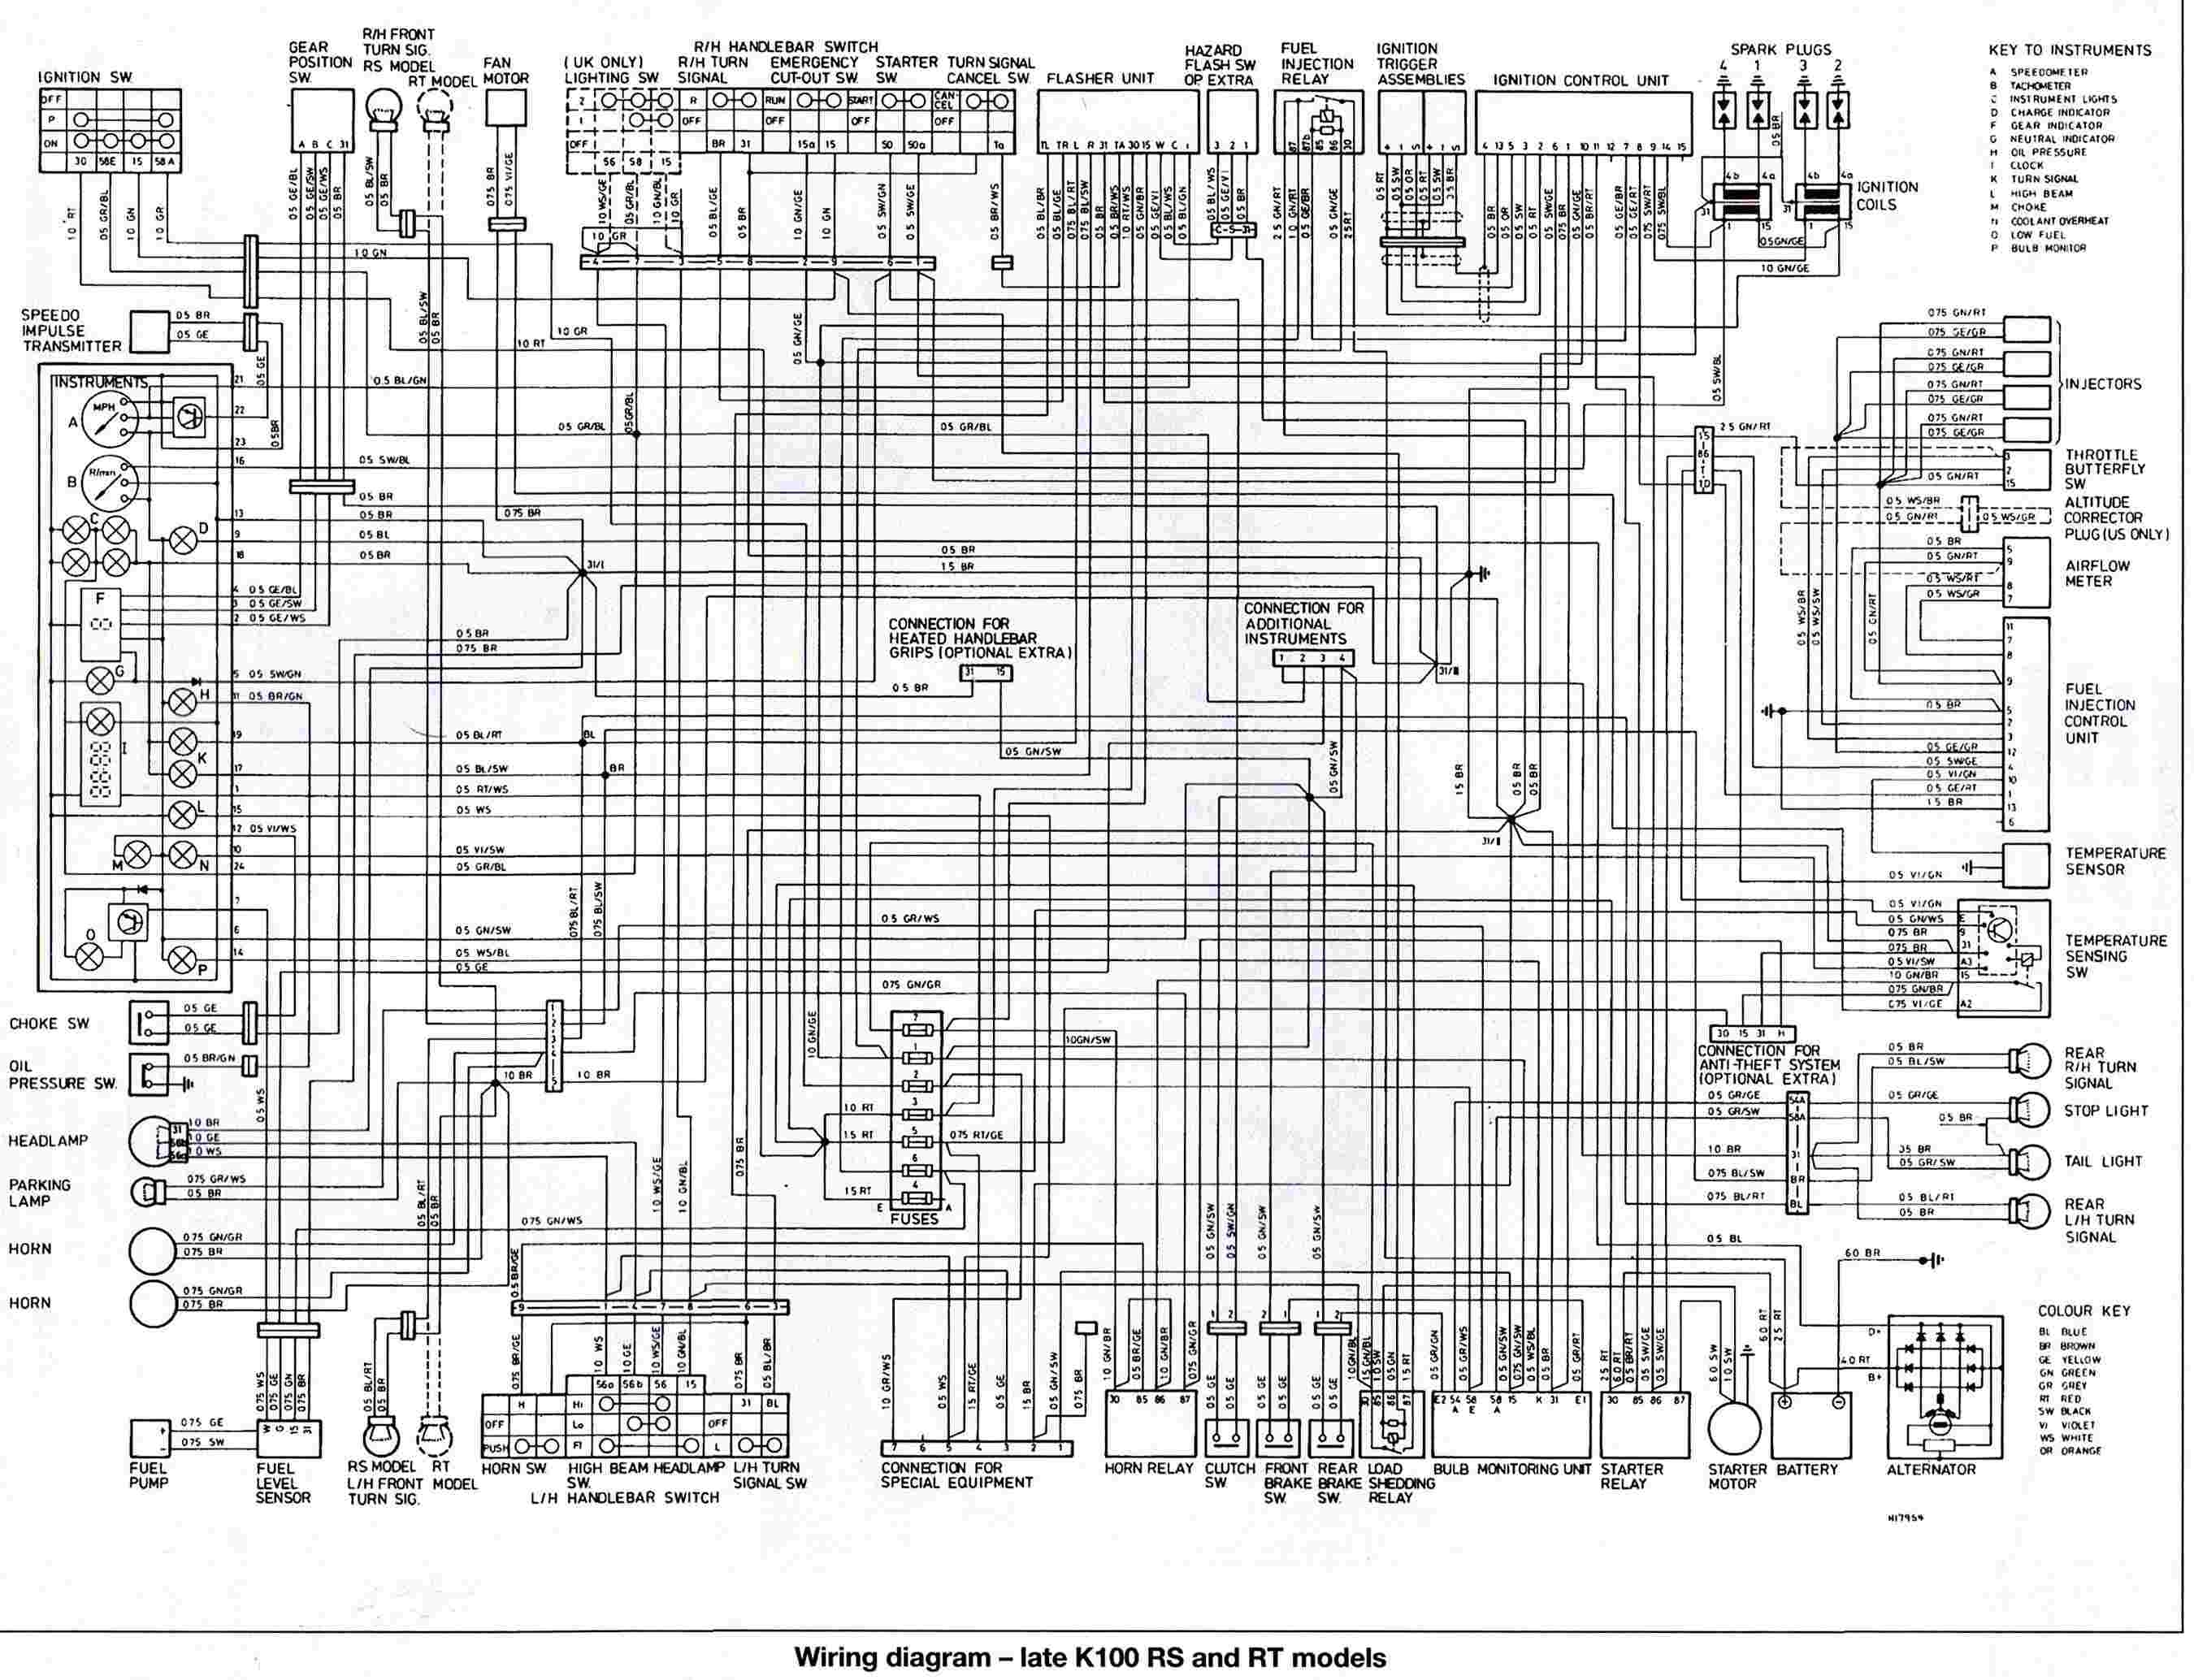 Bmw Wiring Diagrams E39 Schematics Bmw Wiring Diagrams Free Free intended for Bmw Z4 Wiring Diagram